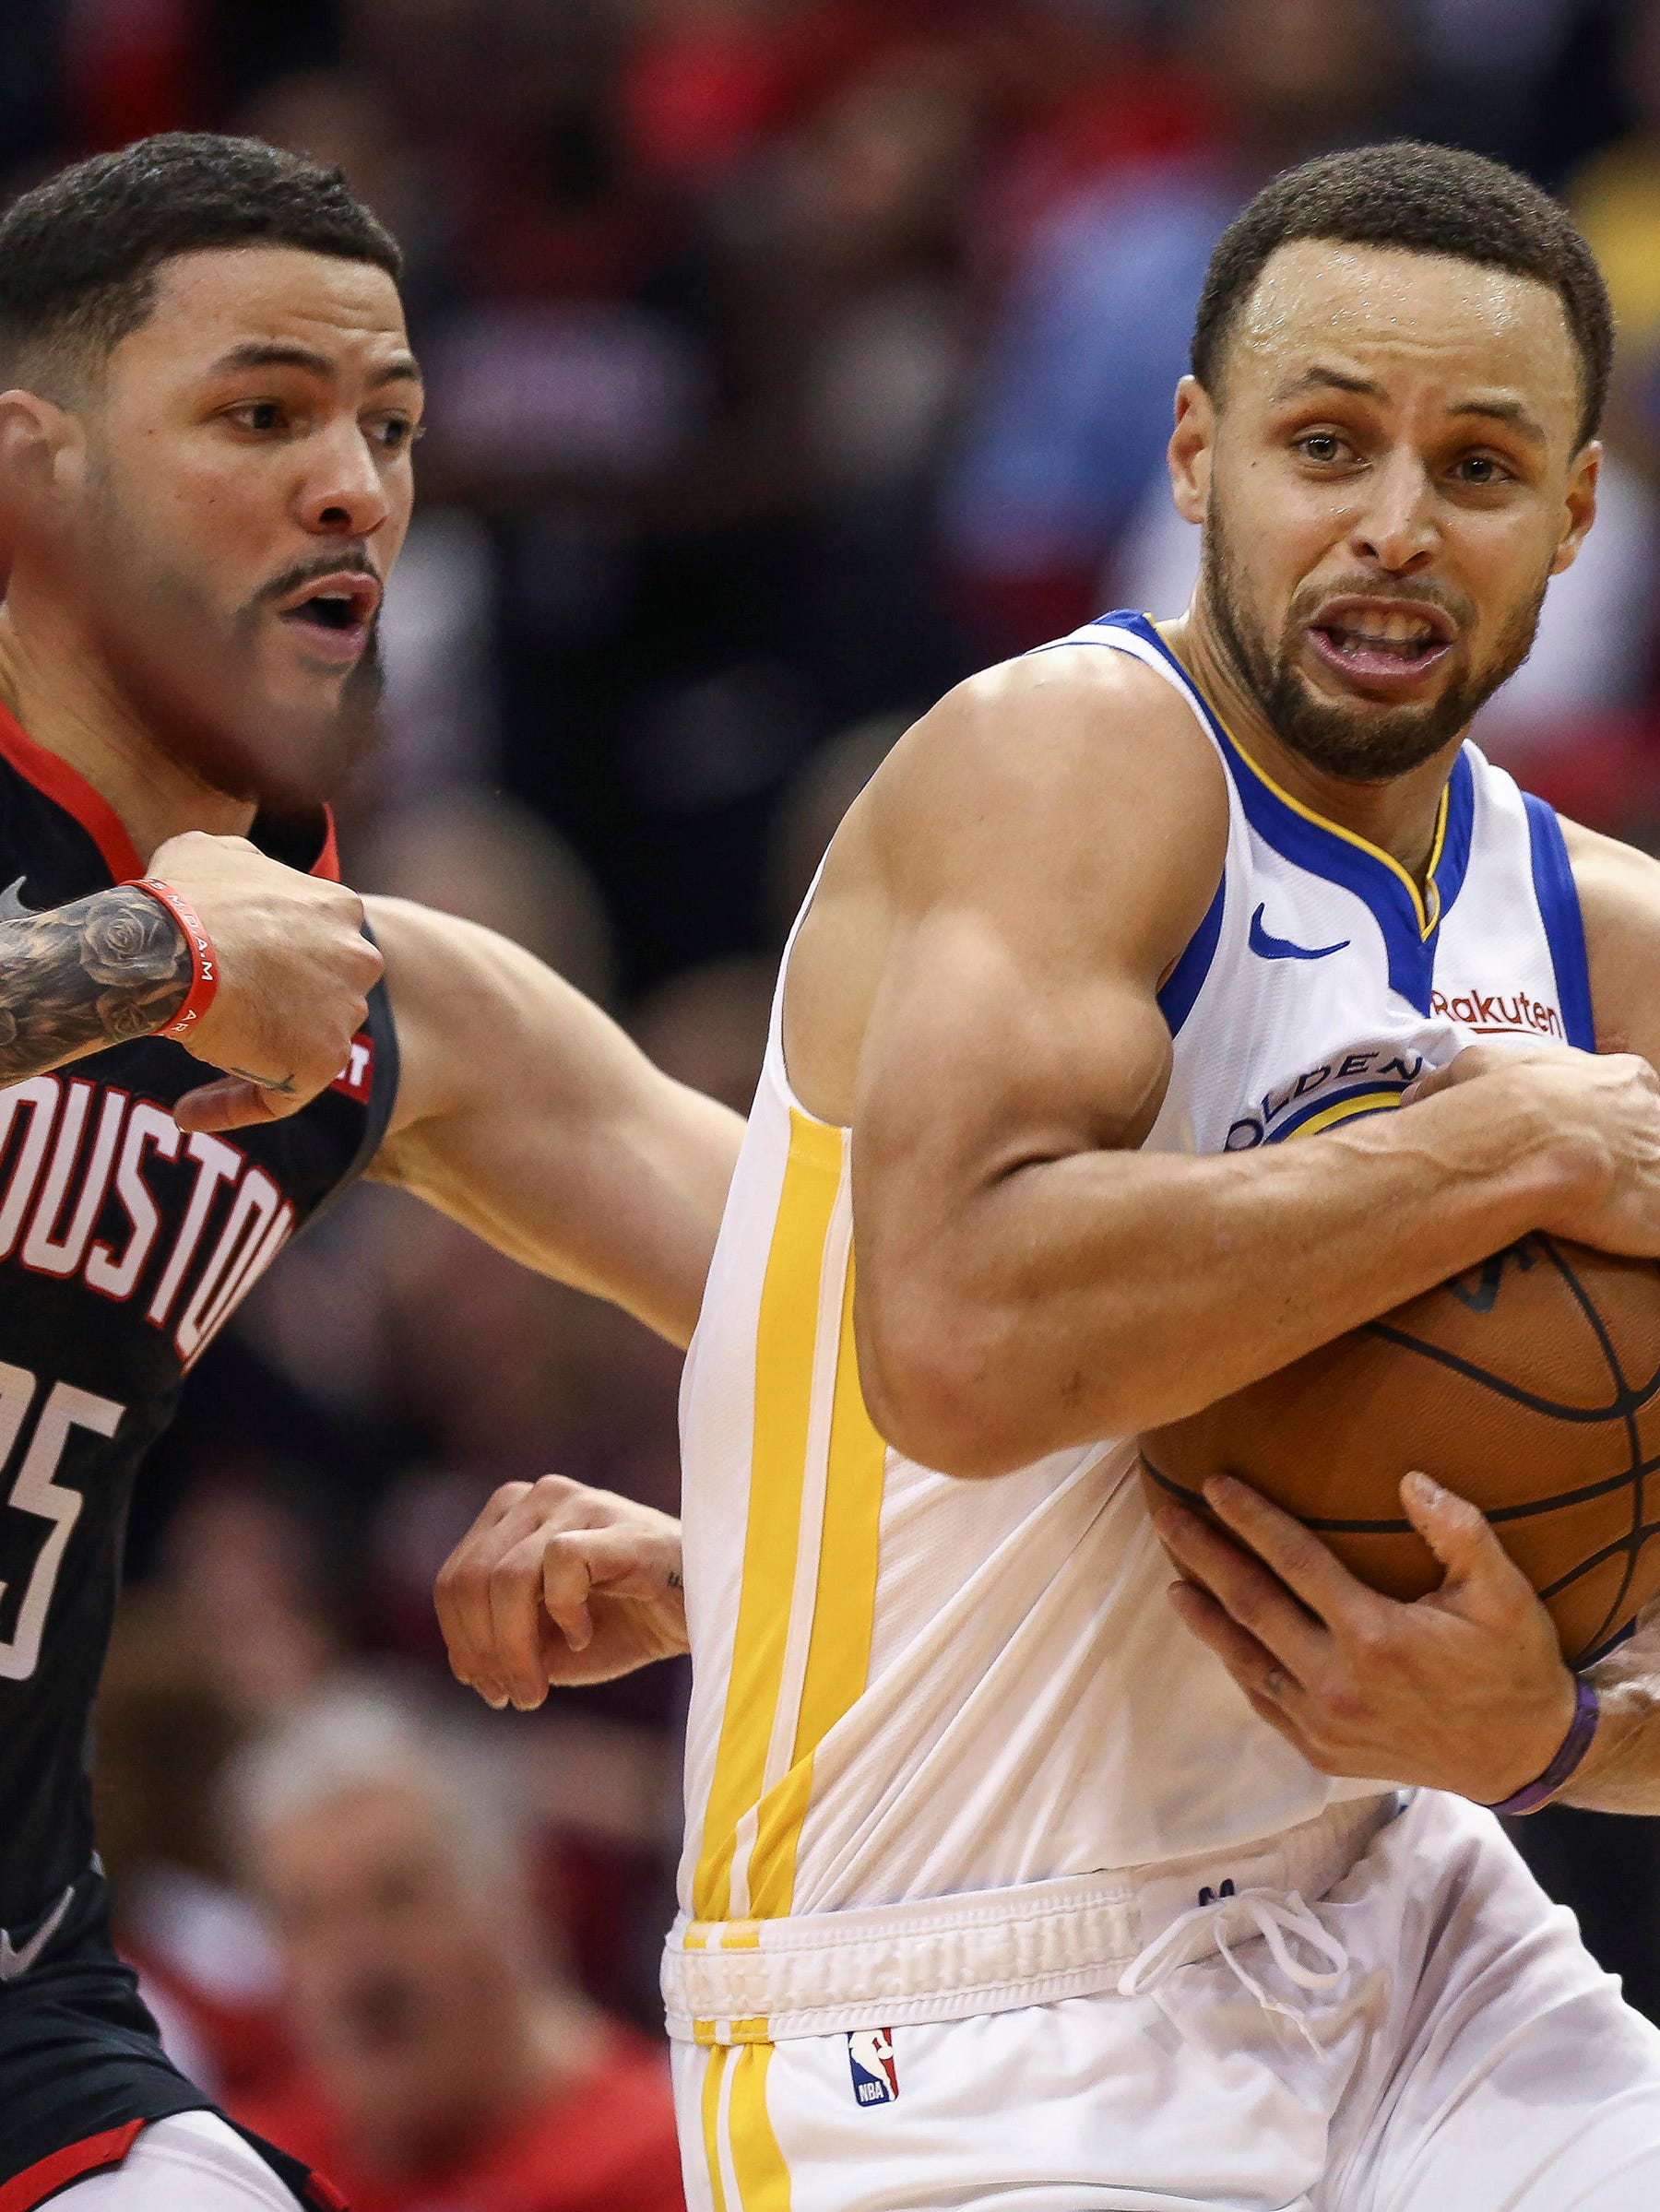 Stephen Curry and the Warriors are trying to secure the No. 1 seed in the Western Conference.